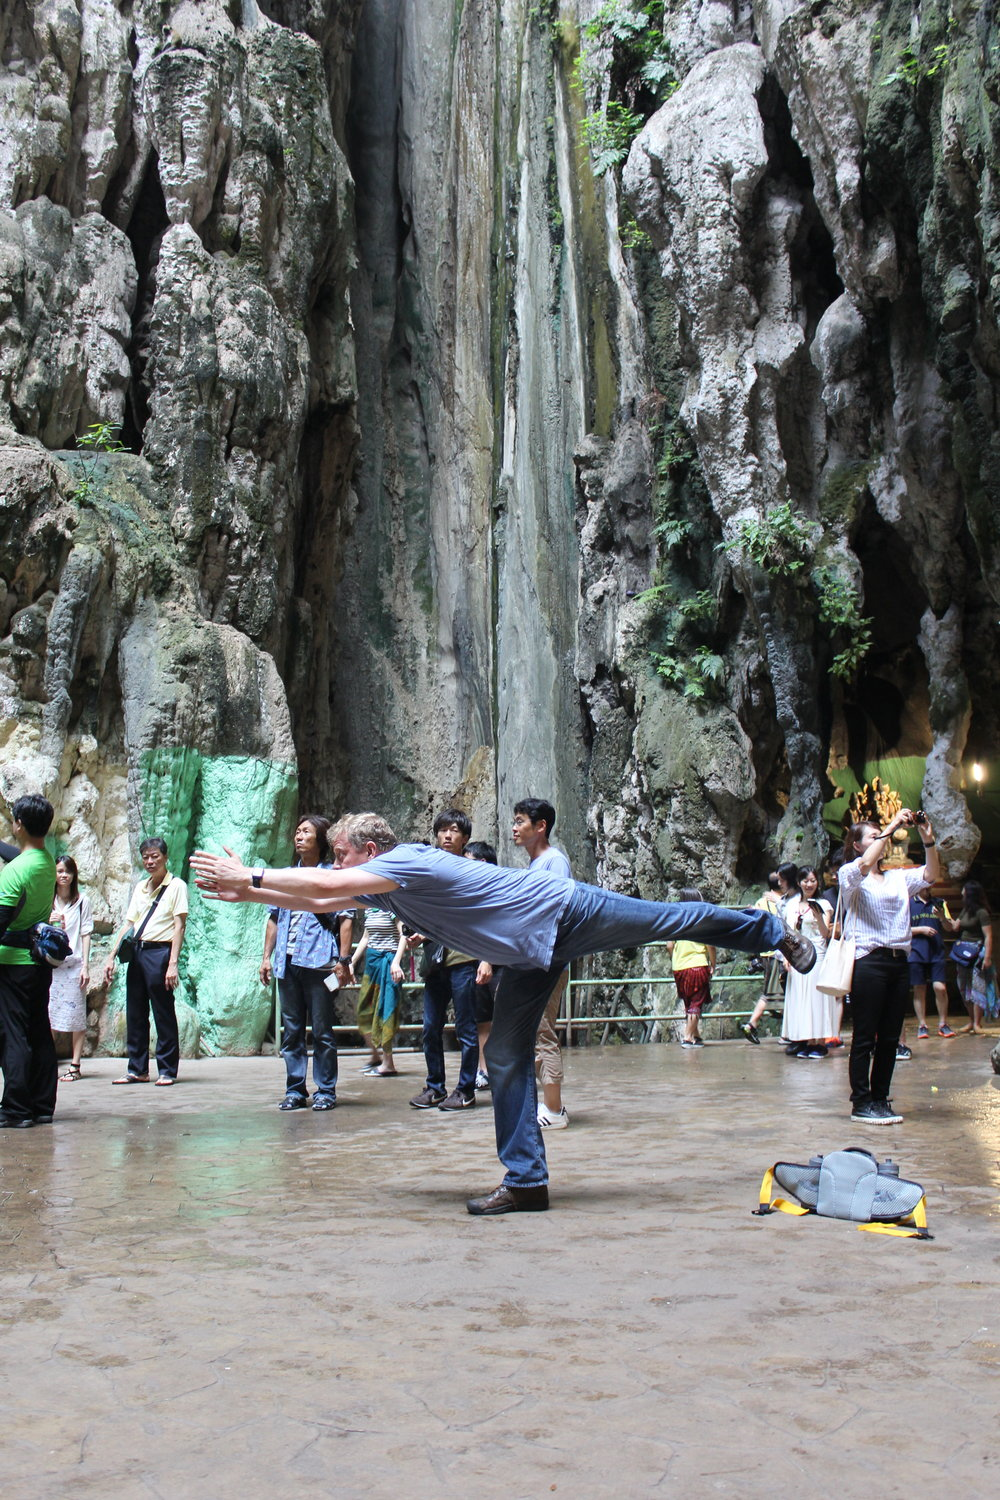 Practicing my yoga, and my levitation skills, in the Batu Caves